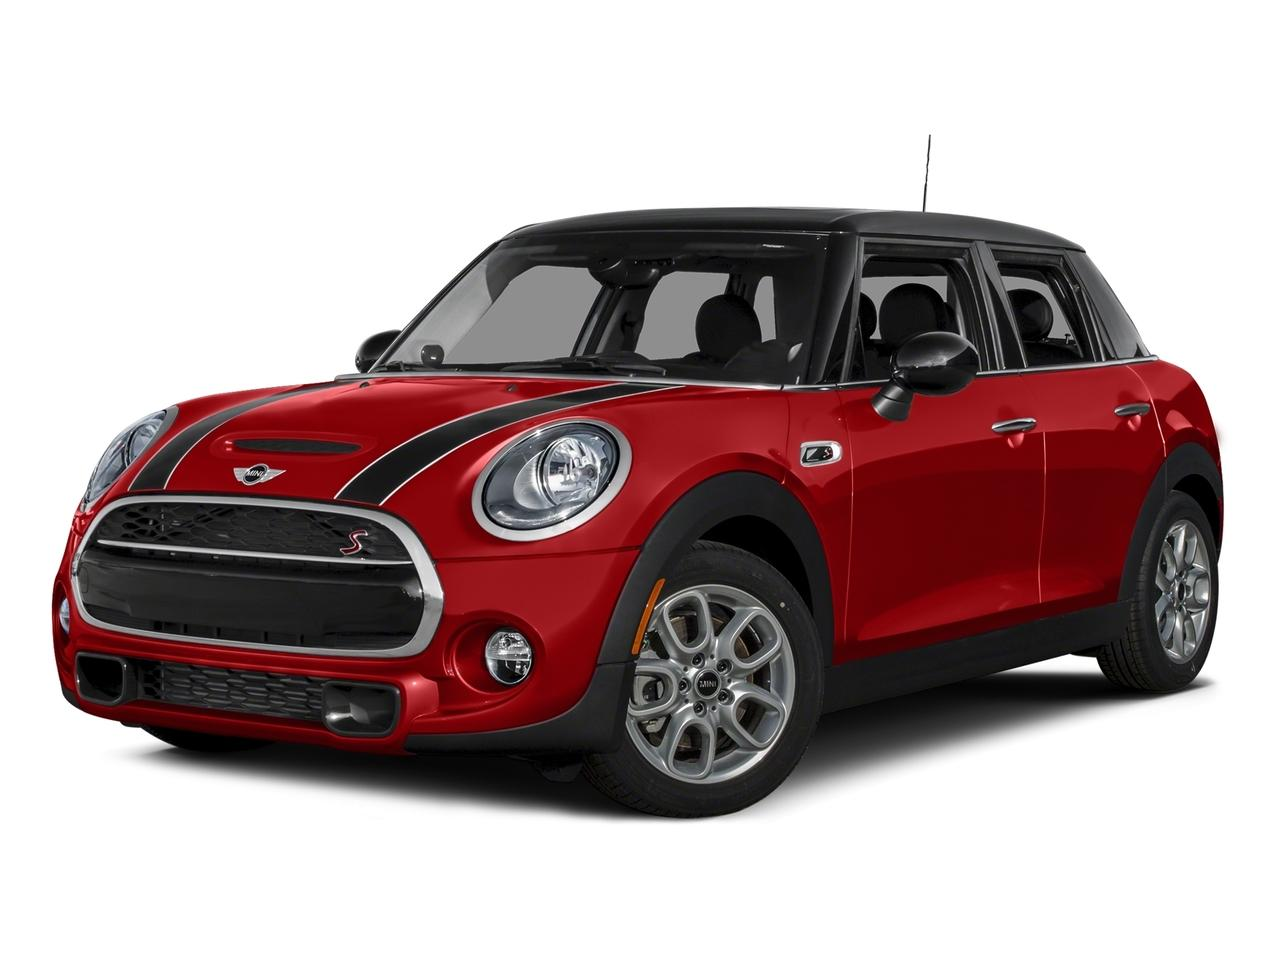 2015 MINI Cooper S Hardtop 4 Door Vehicle Photo in Beaufort, SC 29906